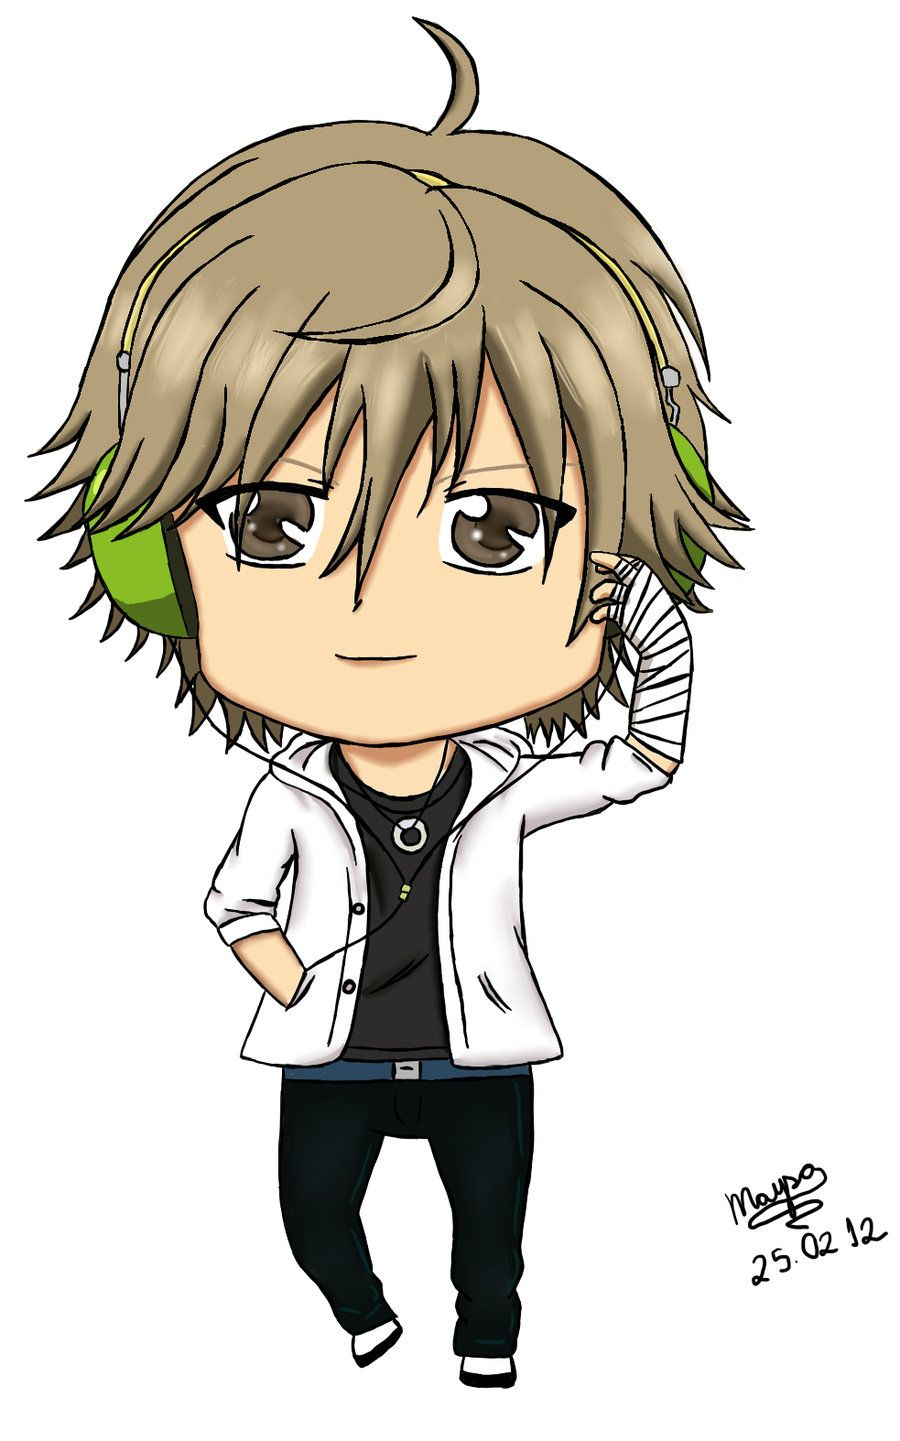 Pix For > Chibi Boy With Headphones Chibi boy